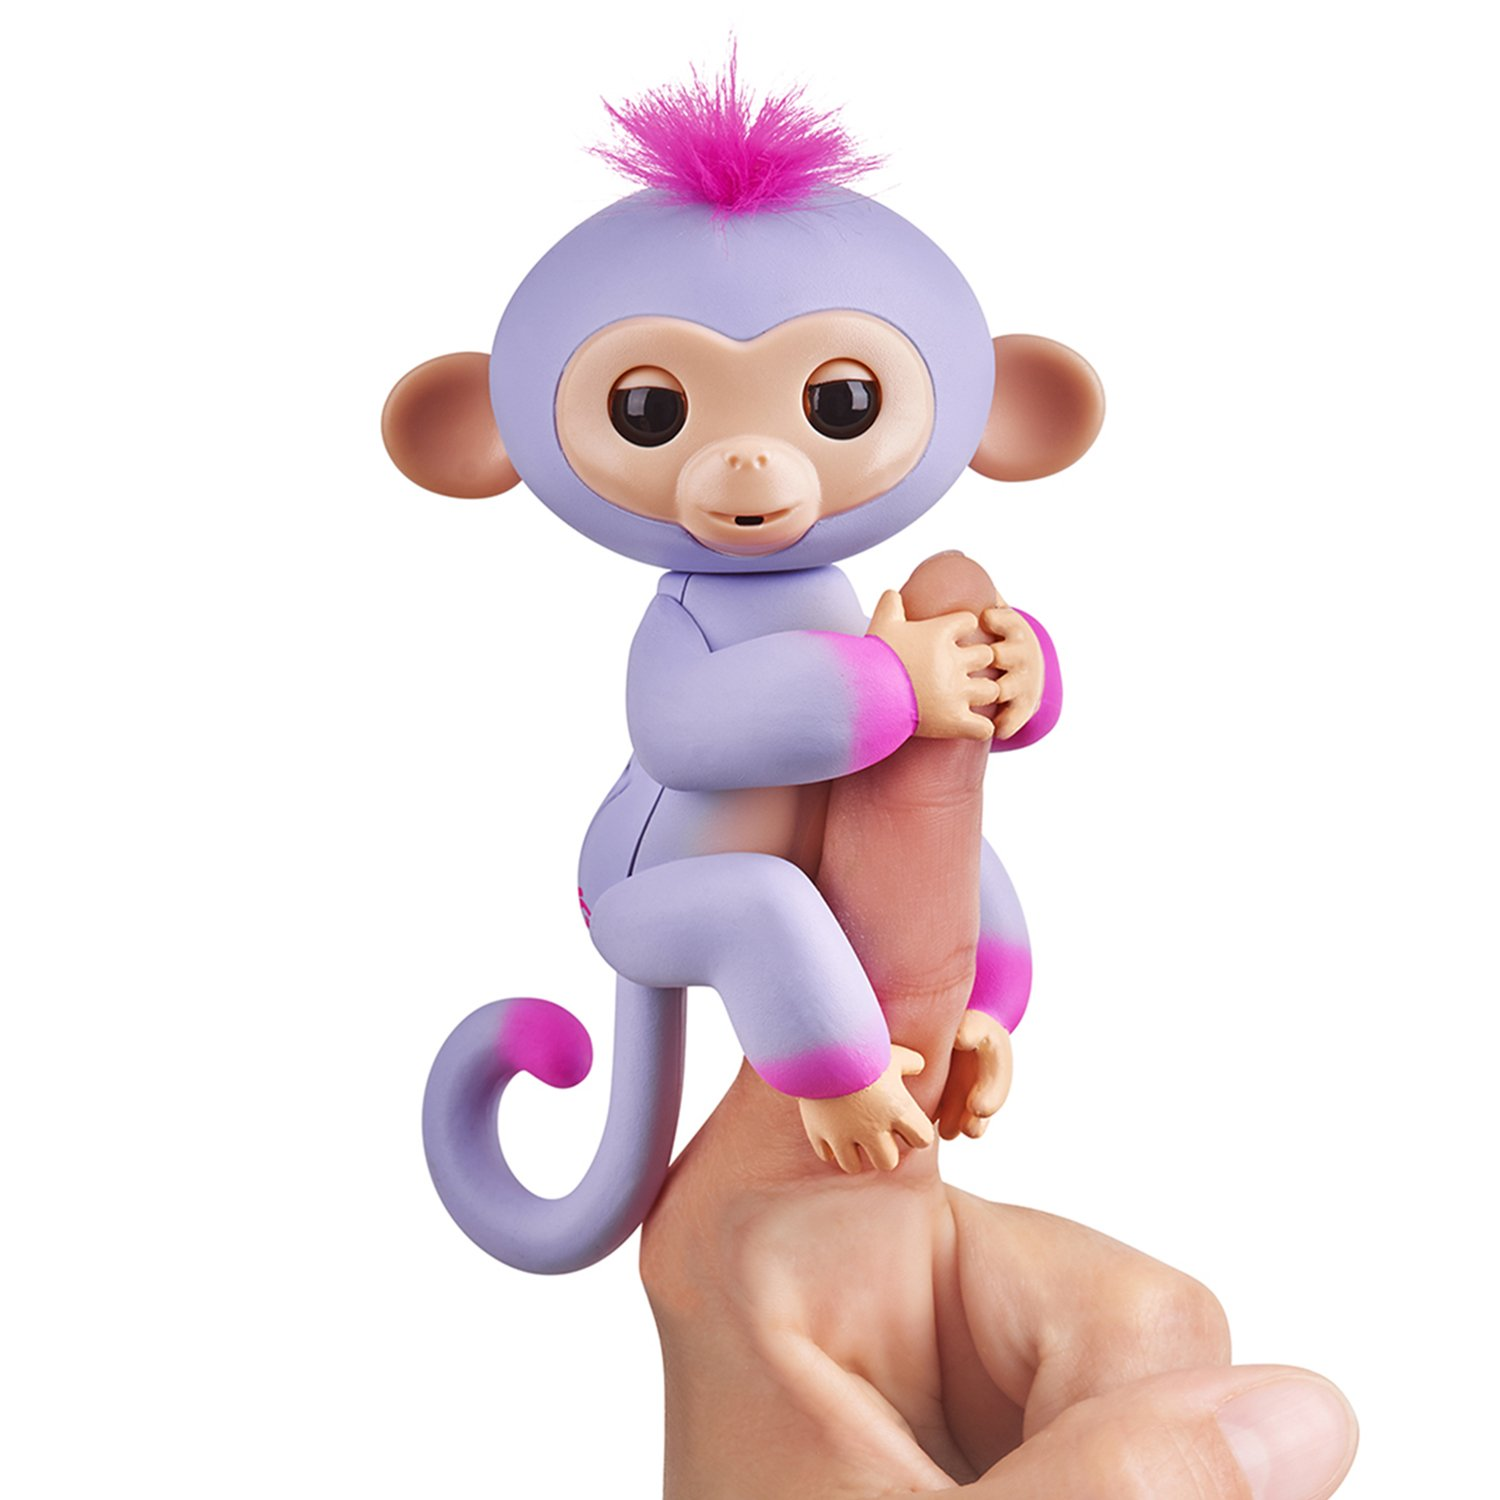 WowWee Fingerlings Interactive Baby Monkey Puppet, Candy-2Tone (Pink to Turquoise) WowWee Import 3722